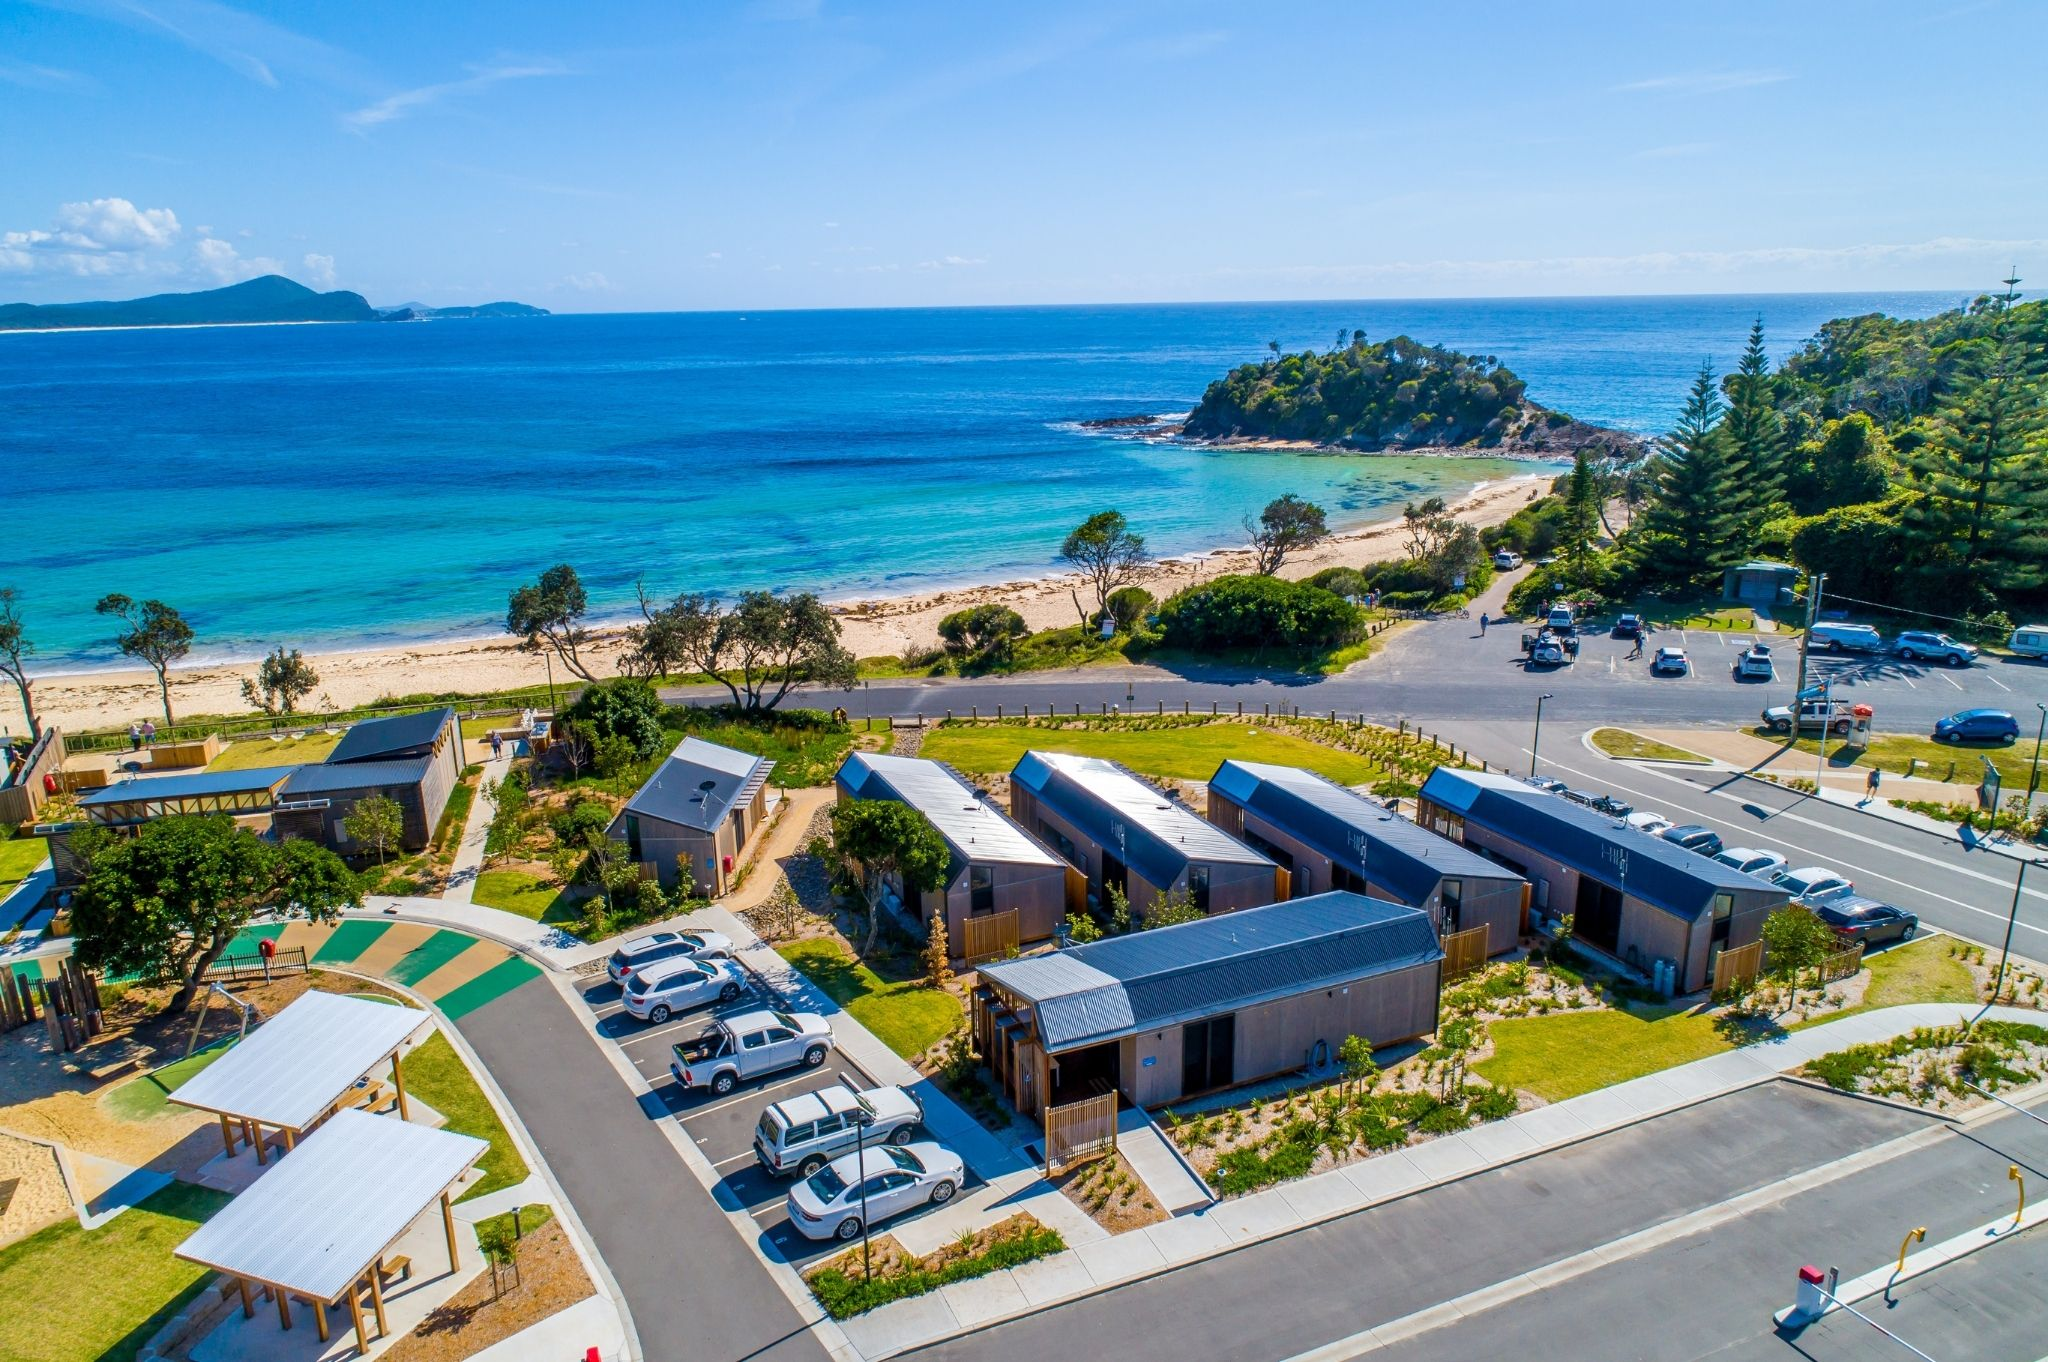 An aerial view of cabin accommodation at Reflections Holiday Parks Seal Rocks